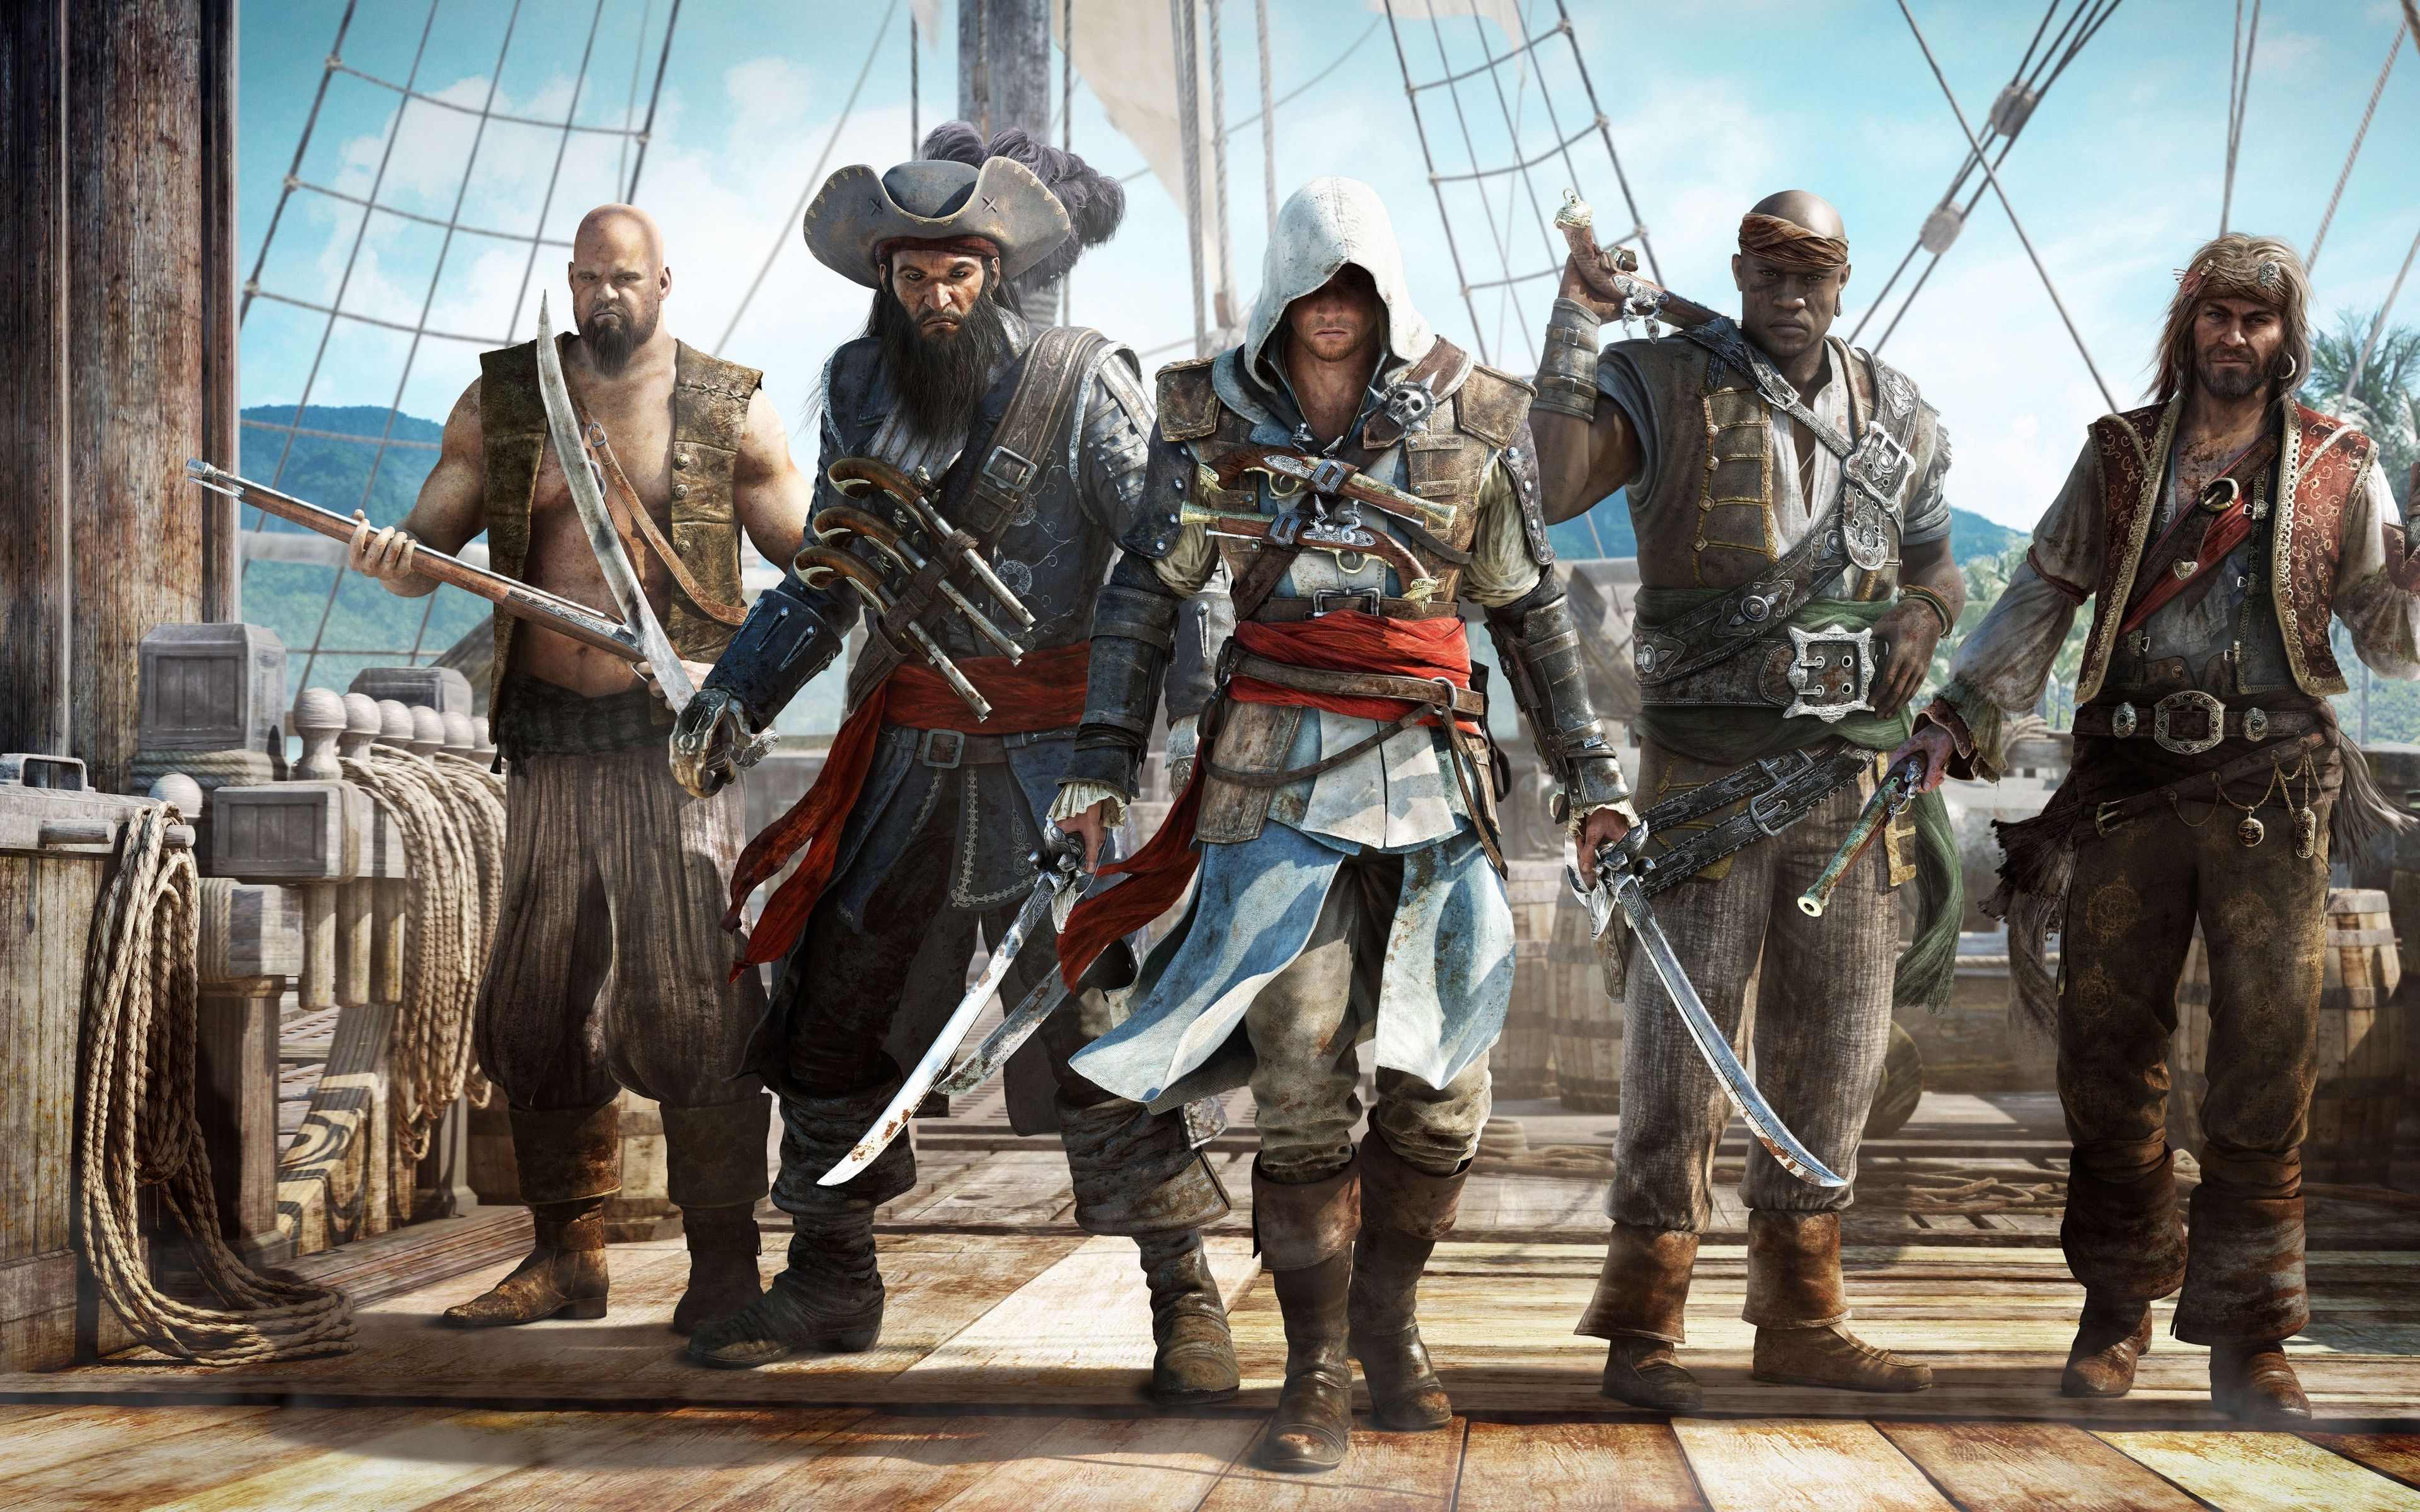 Download Wallpaper 3840x2400 Assassins Creed Black Flag Pirates 4k Ultra Hd 16 10 Hd Background Seni Mobil